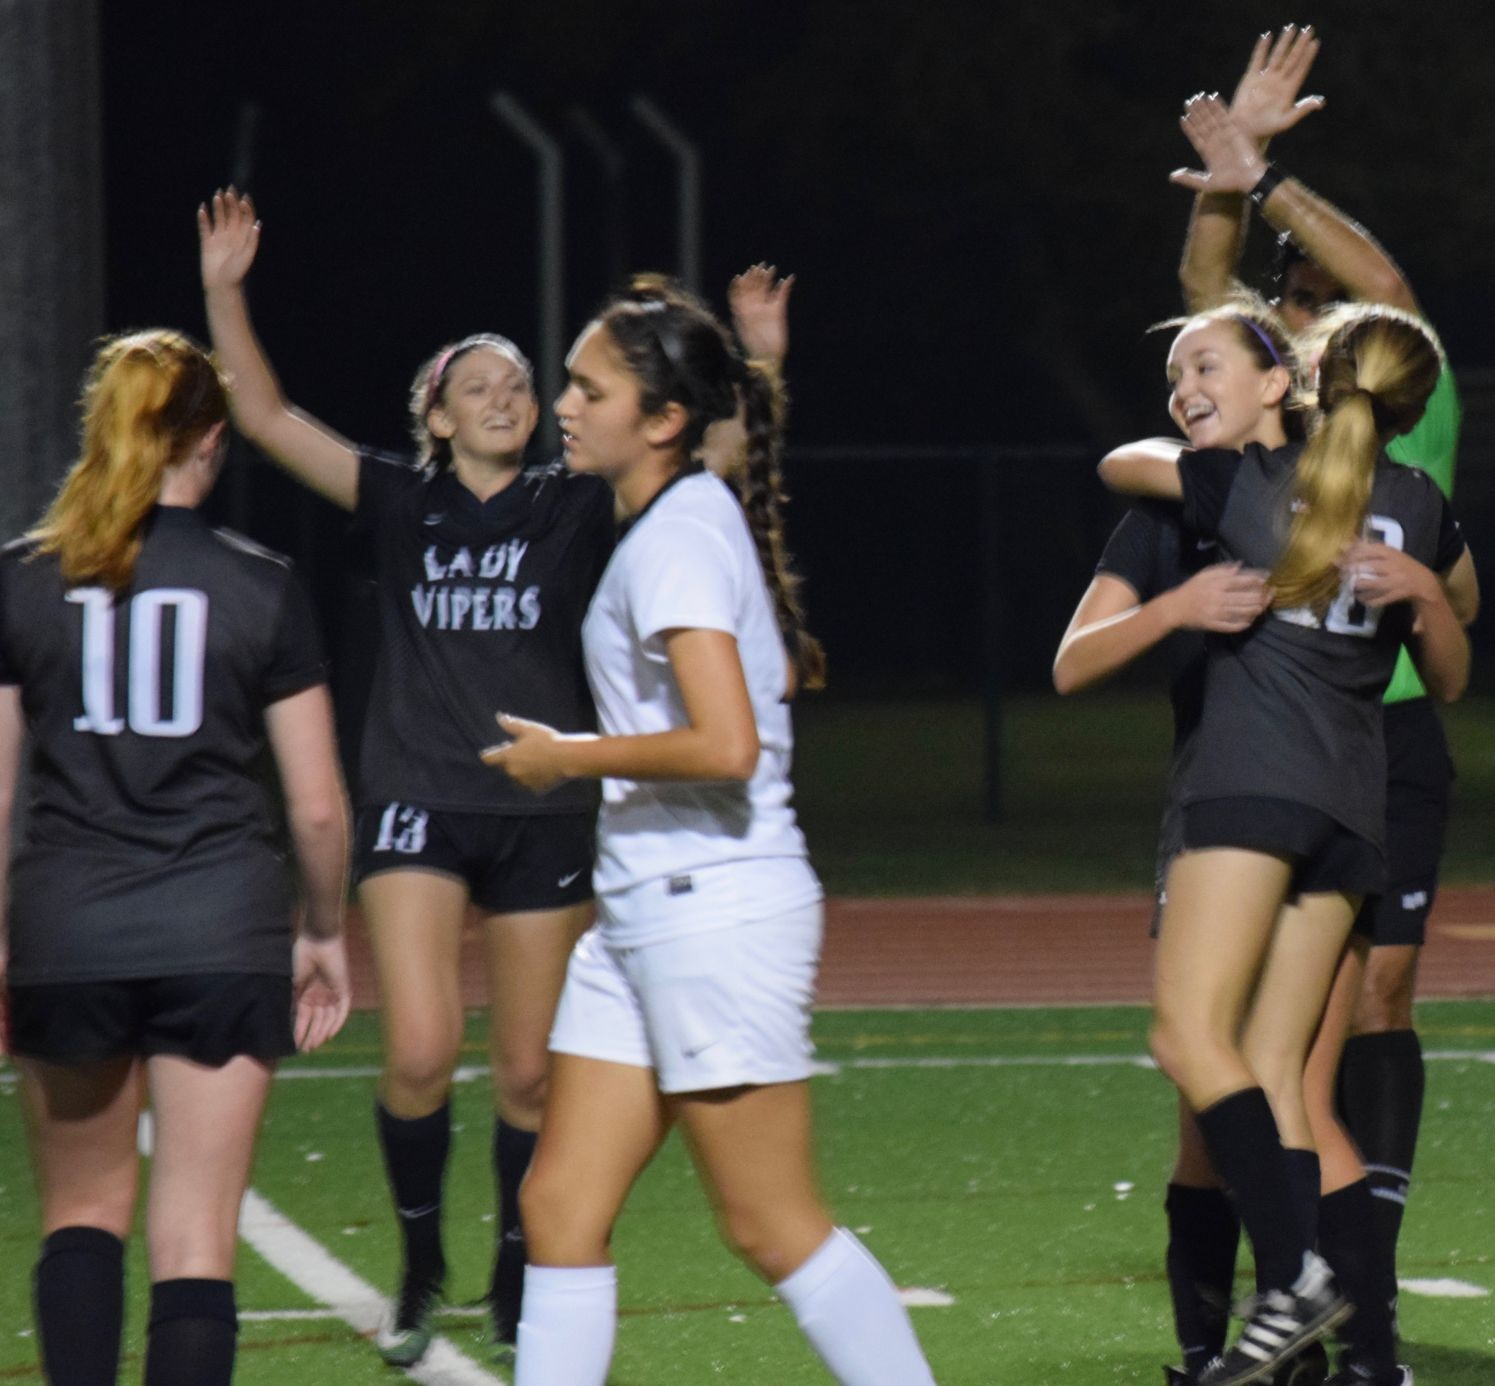 Senior Paige Crossman, right, scored a goal and Vandegrift beat Vista Ridge last week to clinch their third straight district title.